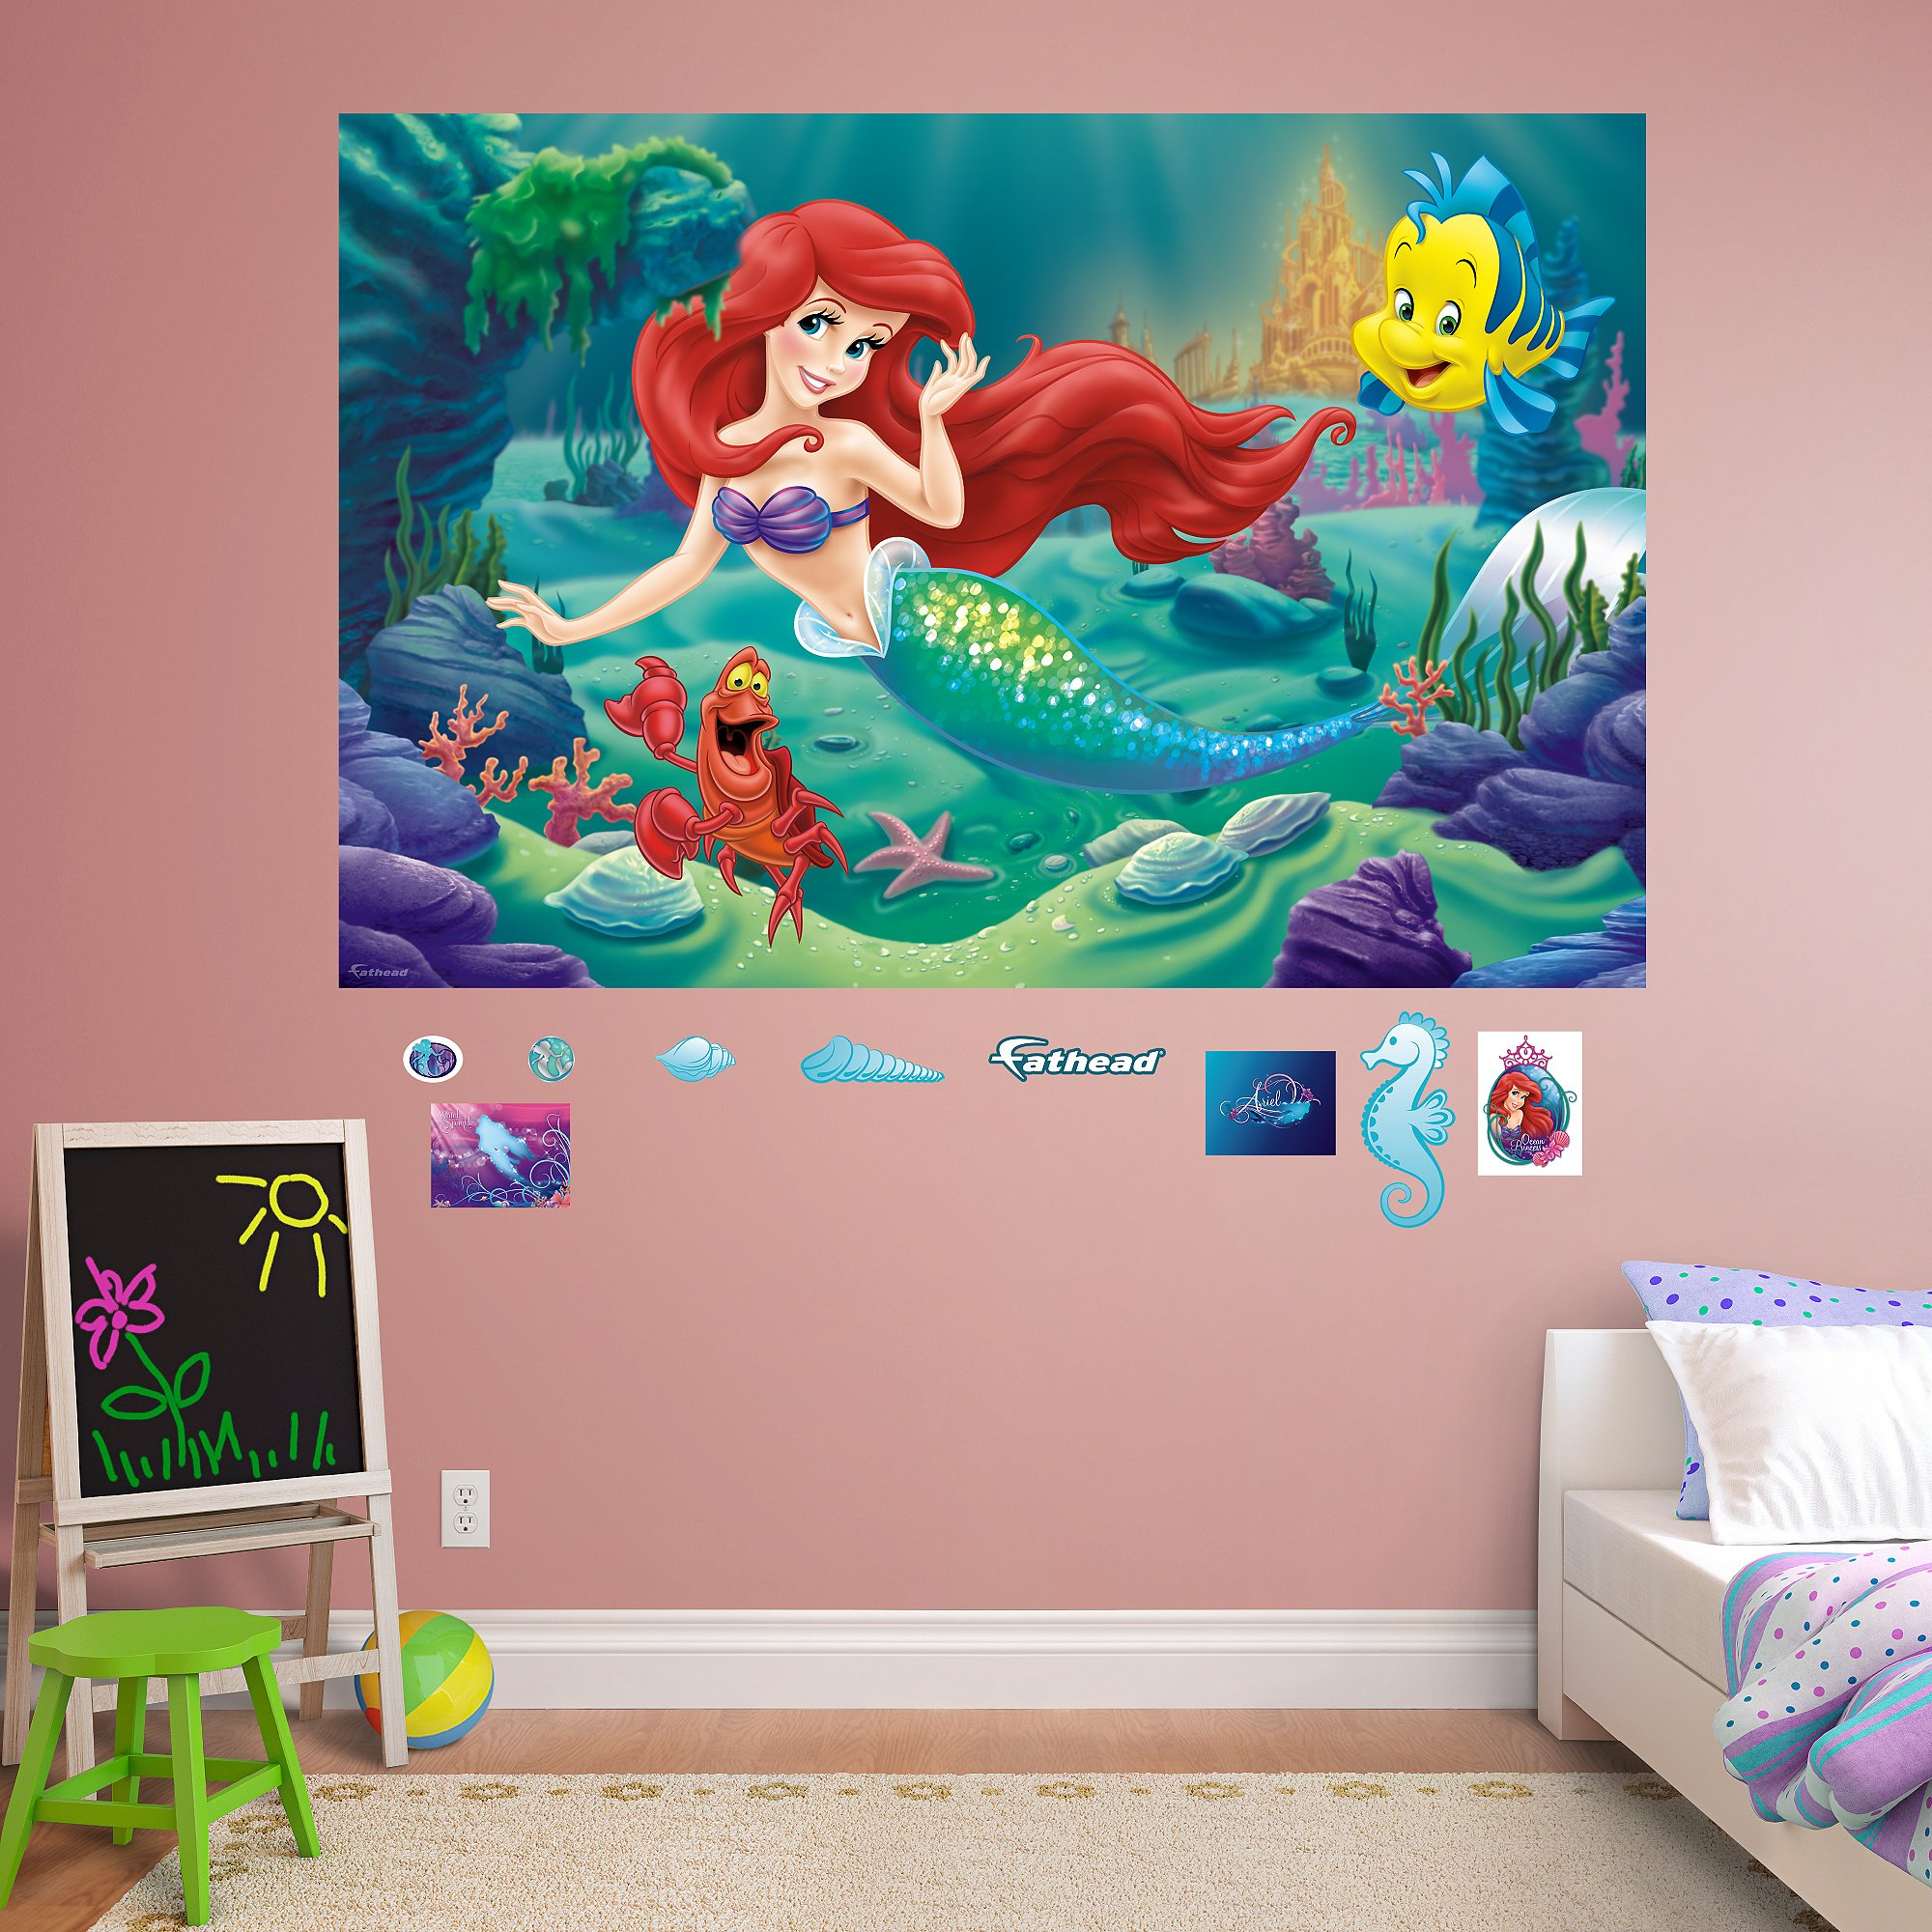 FATHEAD The Little Mermaid: Mural-Huge Officially Licensed Disney Removable Graphic Wall Decal by FATHEAD